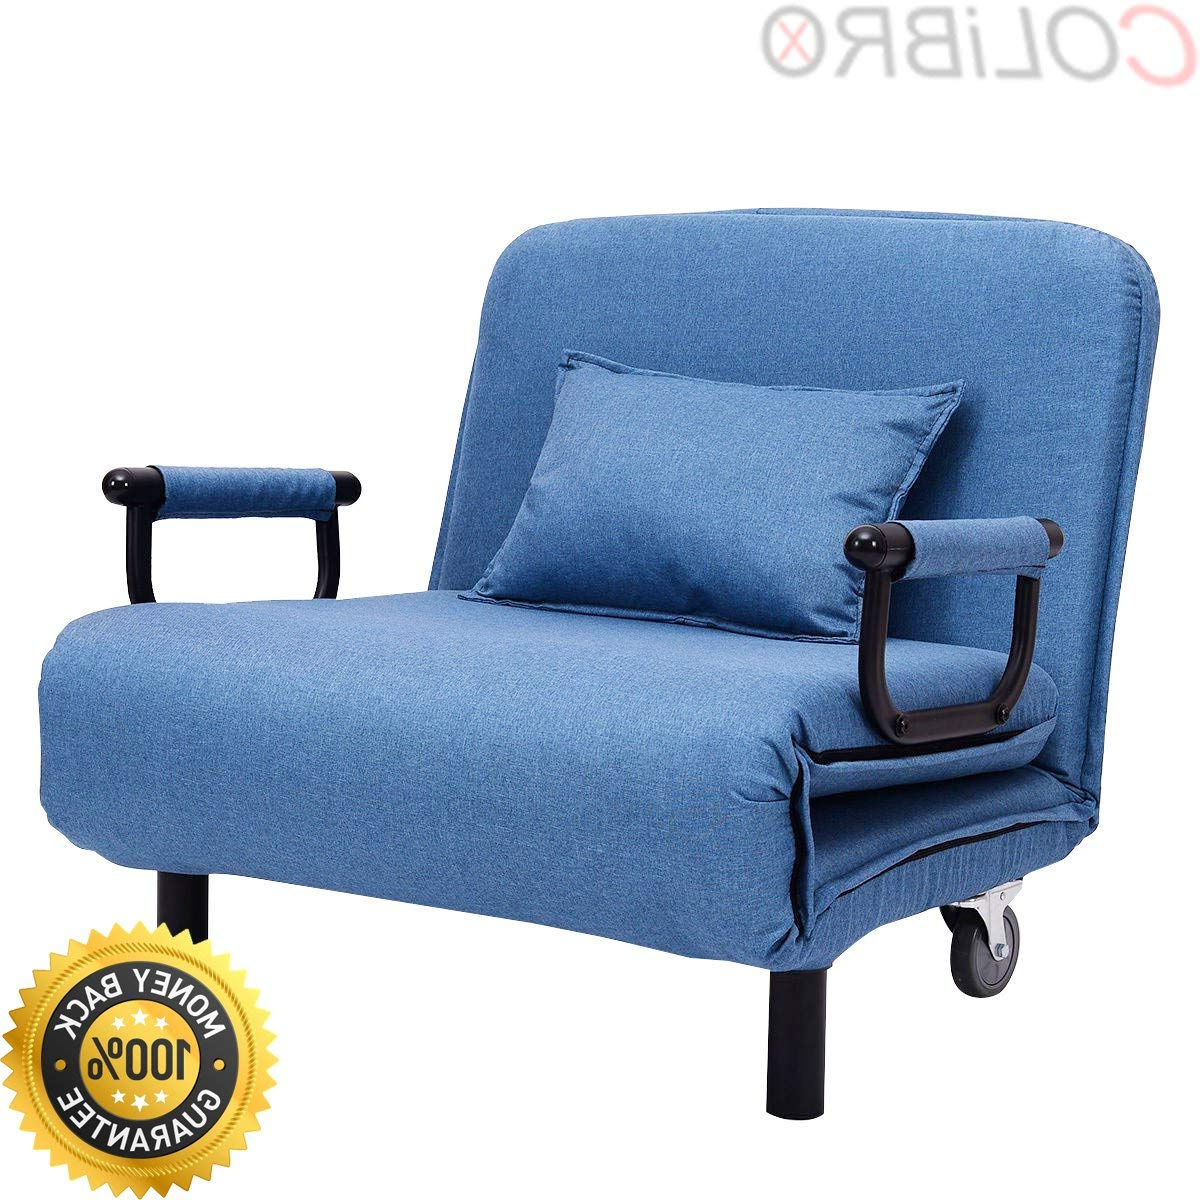 Well Known Convertible Sofa Chair Bed Inside Cheap Convertible Sofa Chair Bed, Find Convertible Sofa Chair Bed (View 17 of 20)